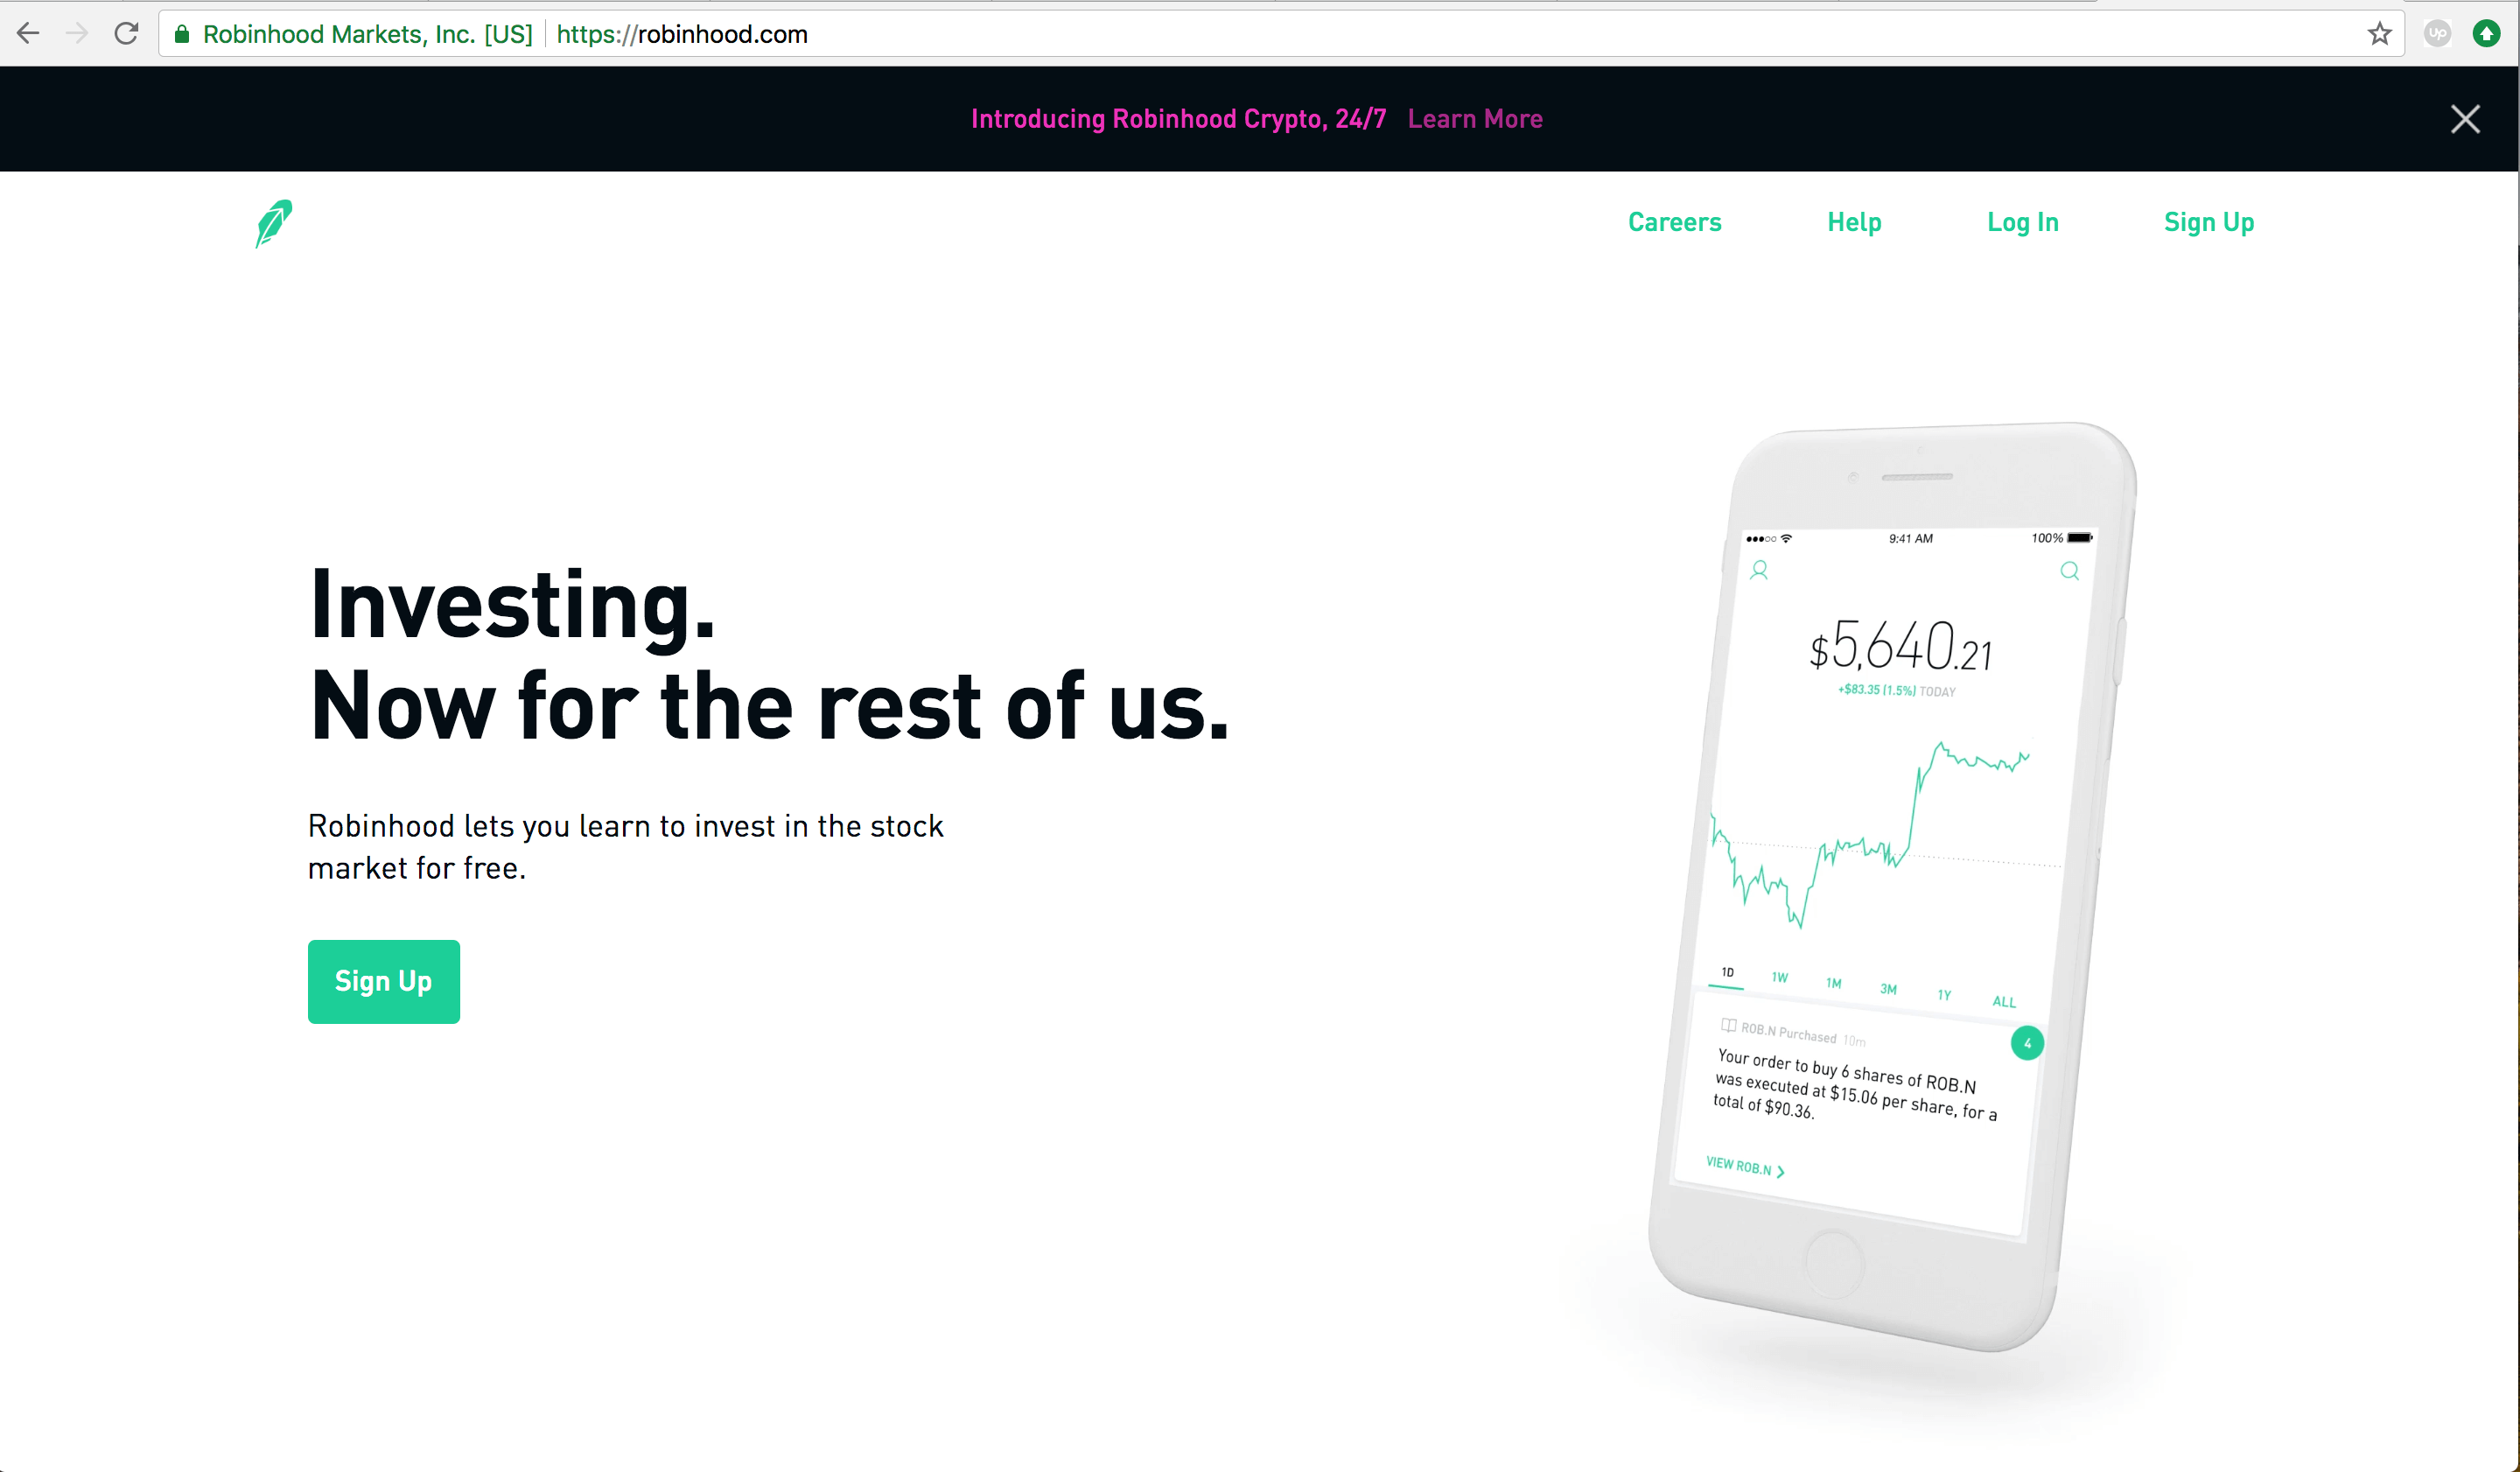 Does Robinhood Gold Suggest Hot Sale